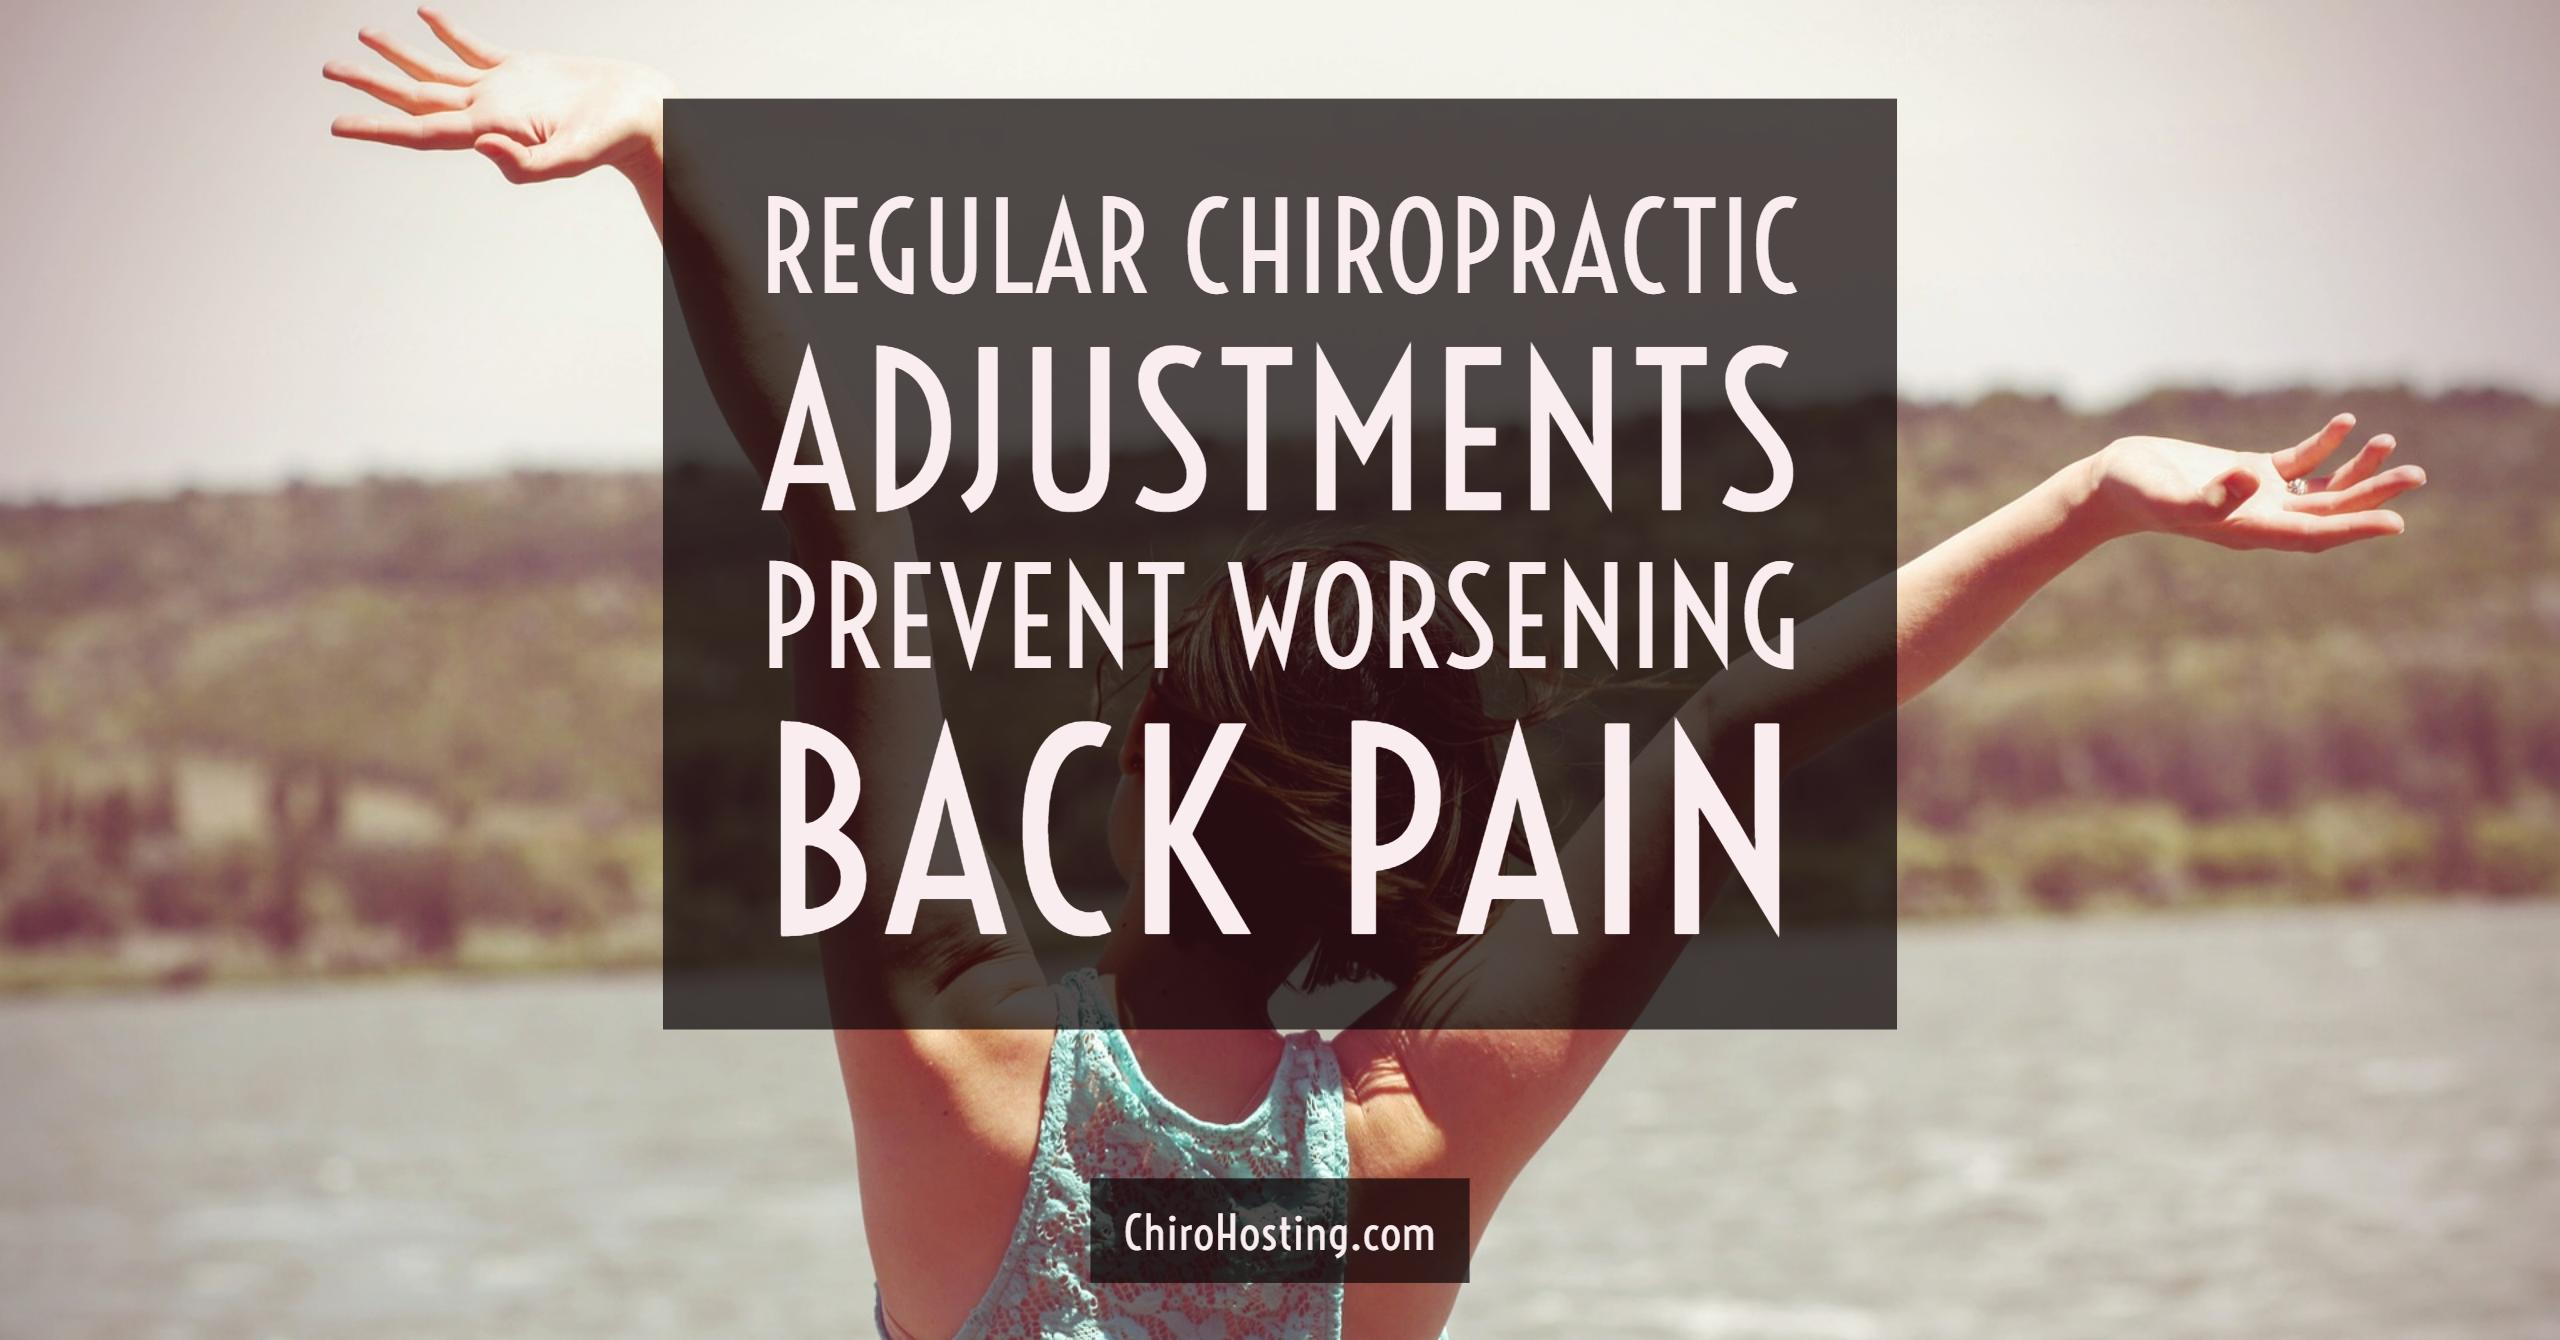 Regular Chiropractic Adjustments Prevent Worsening Back Pain, Study Finds